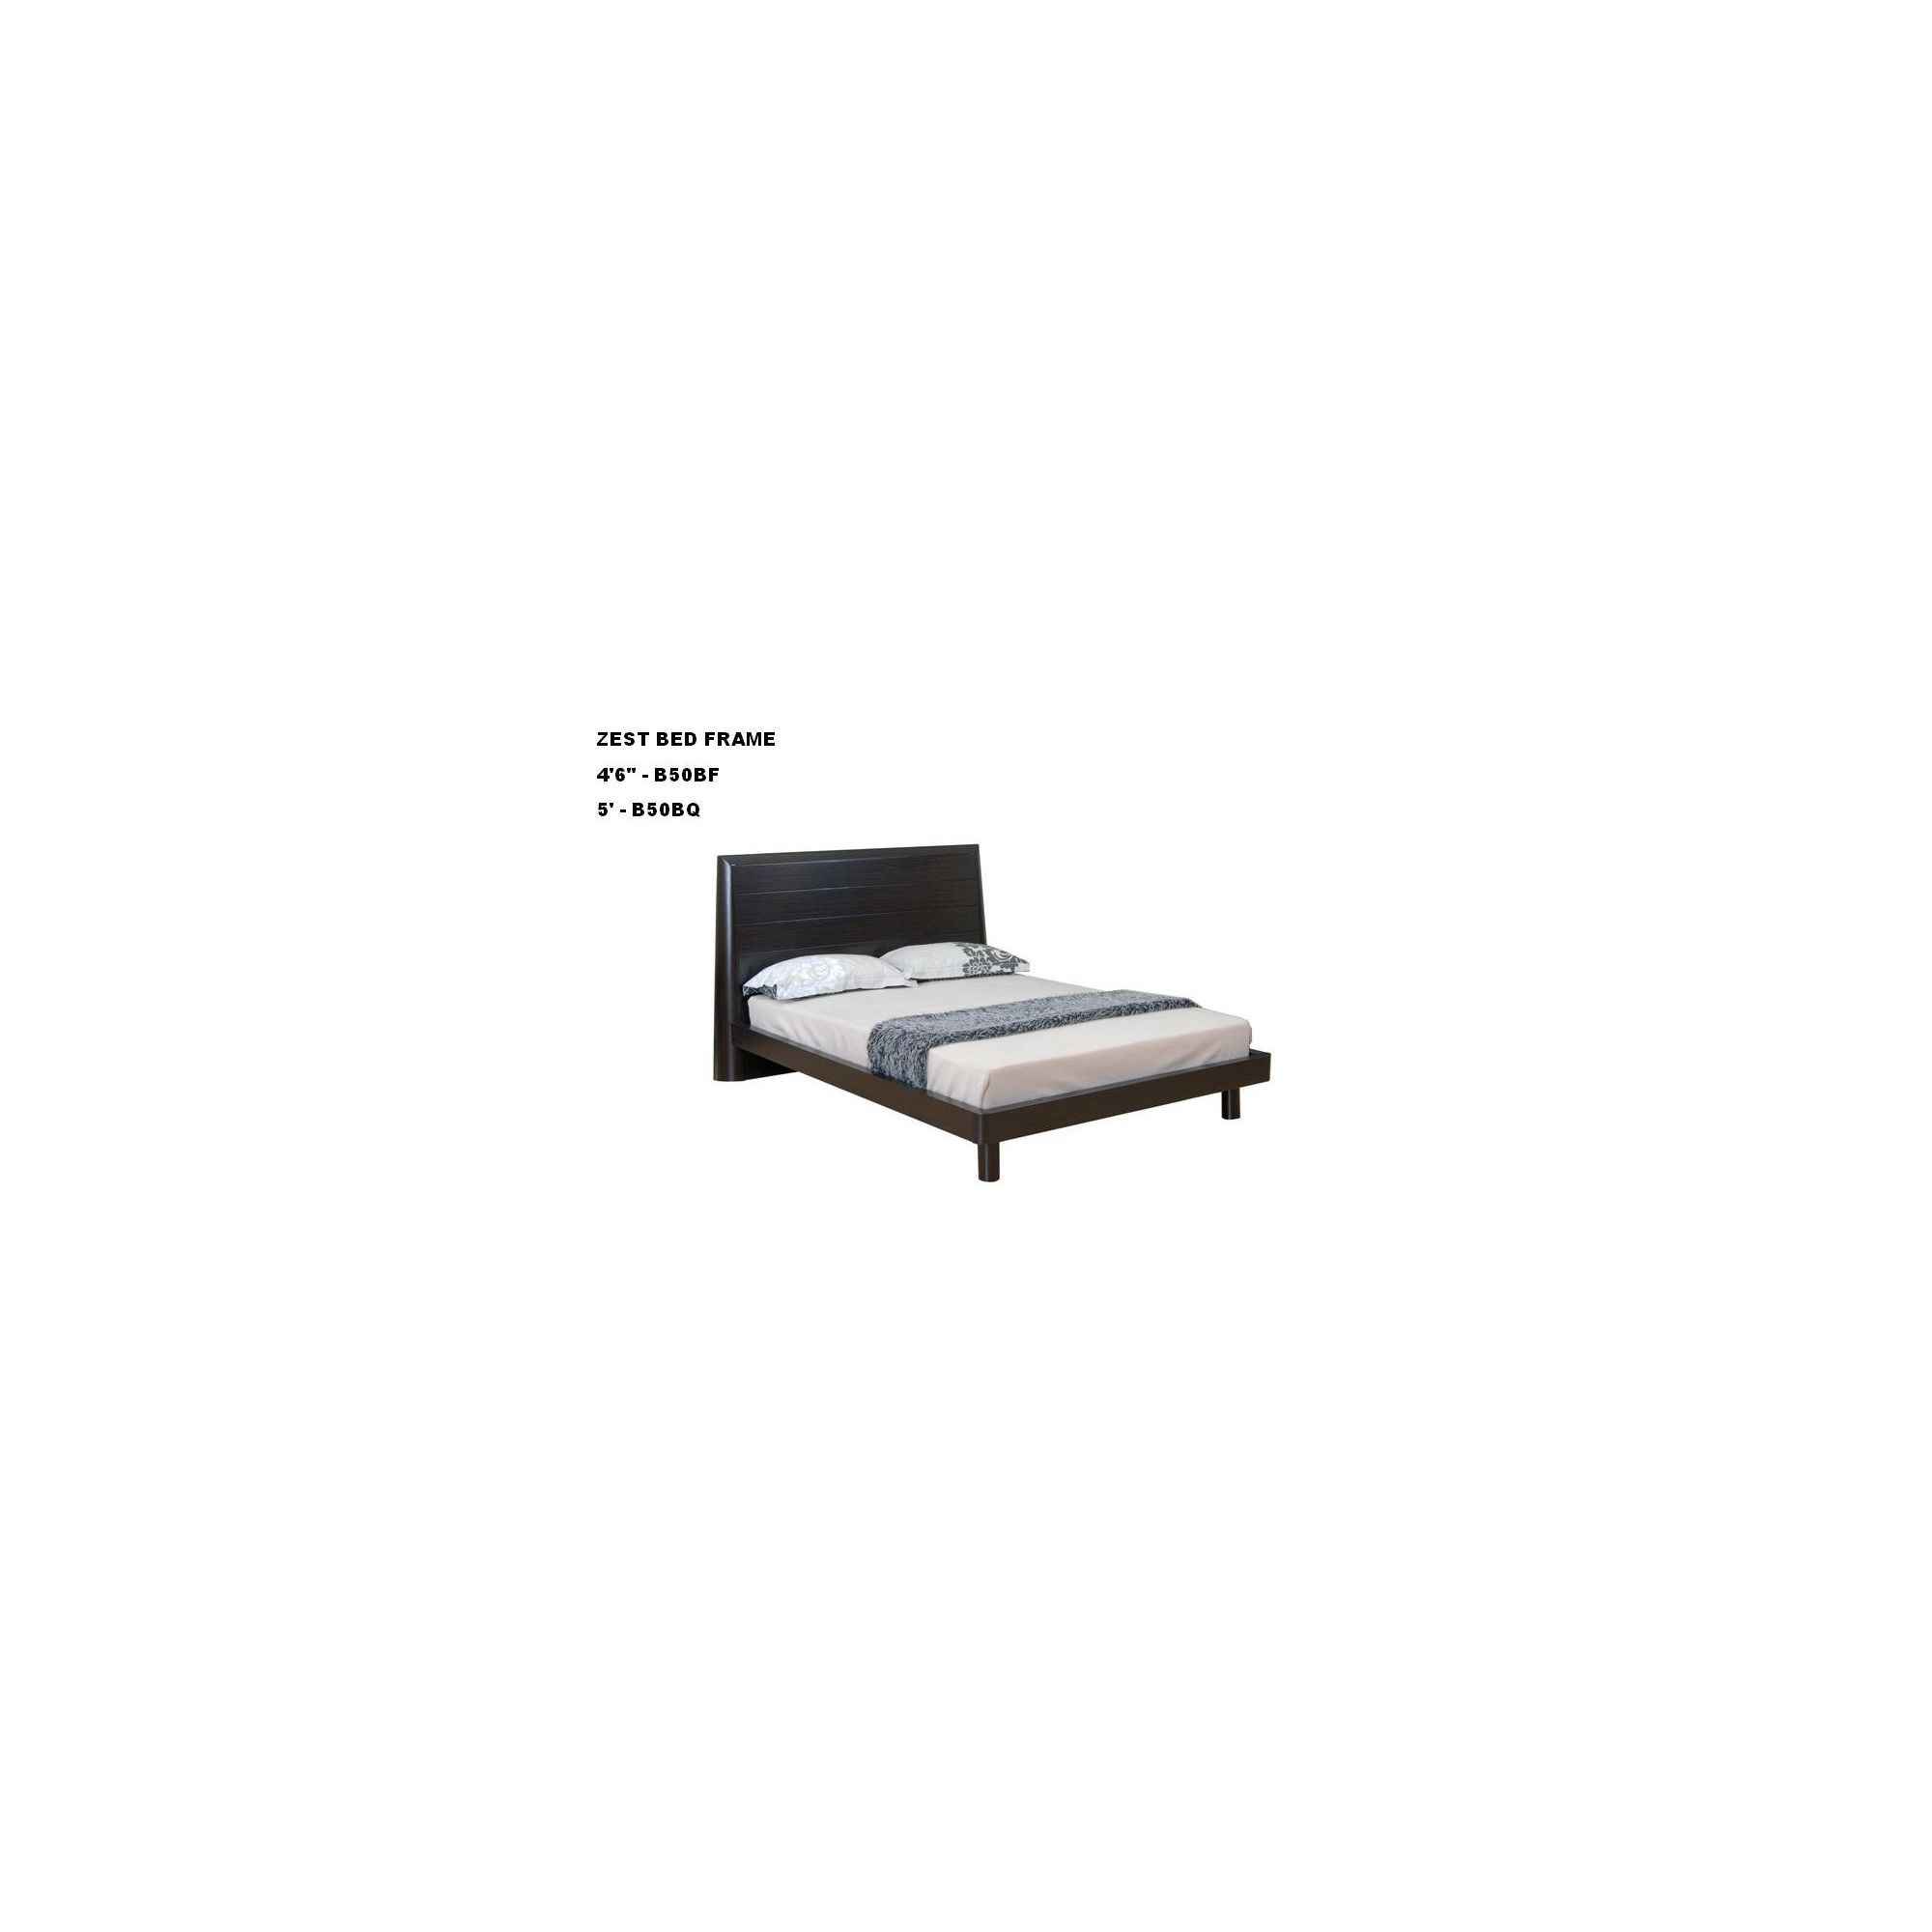 Central Furniture Distribution Zest Bed - King at Tesco Direct